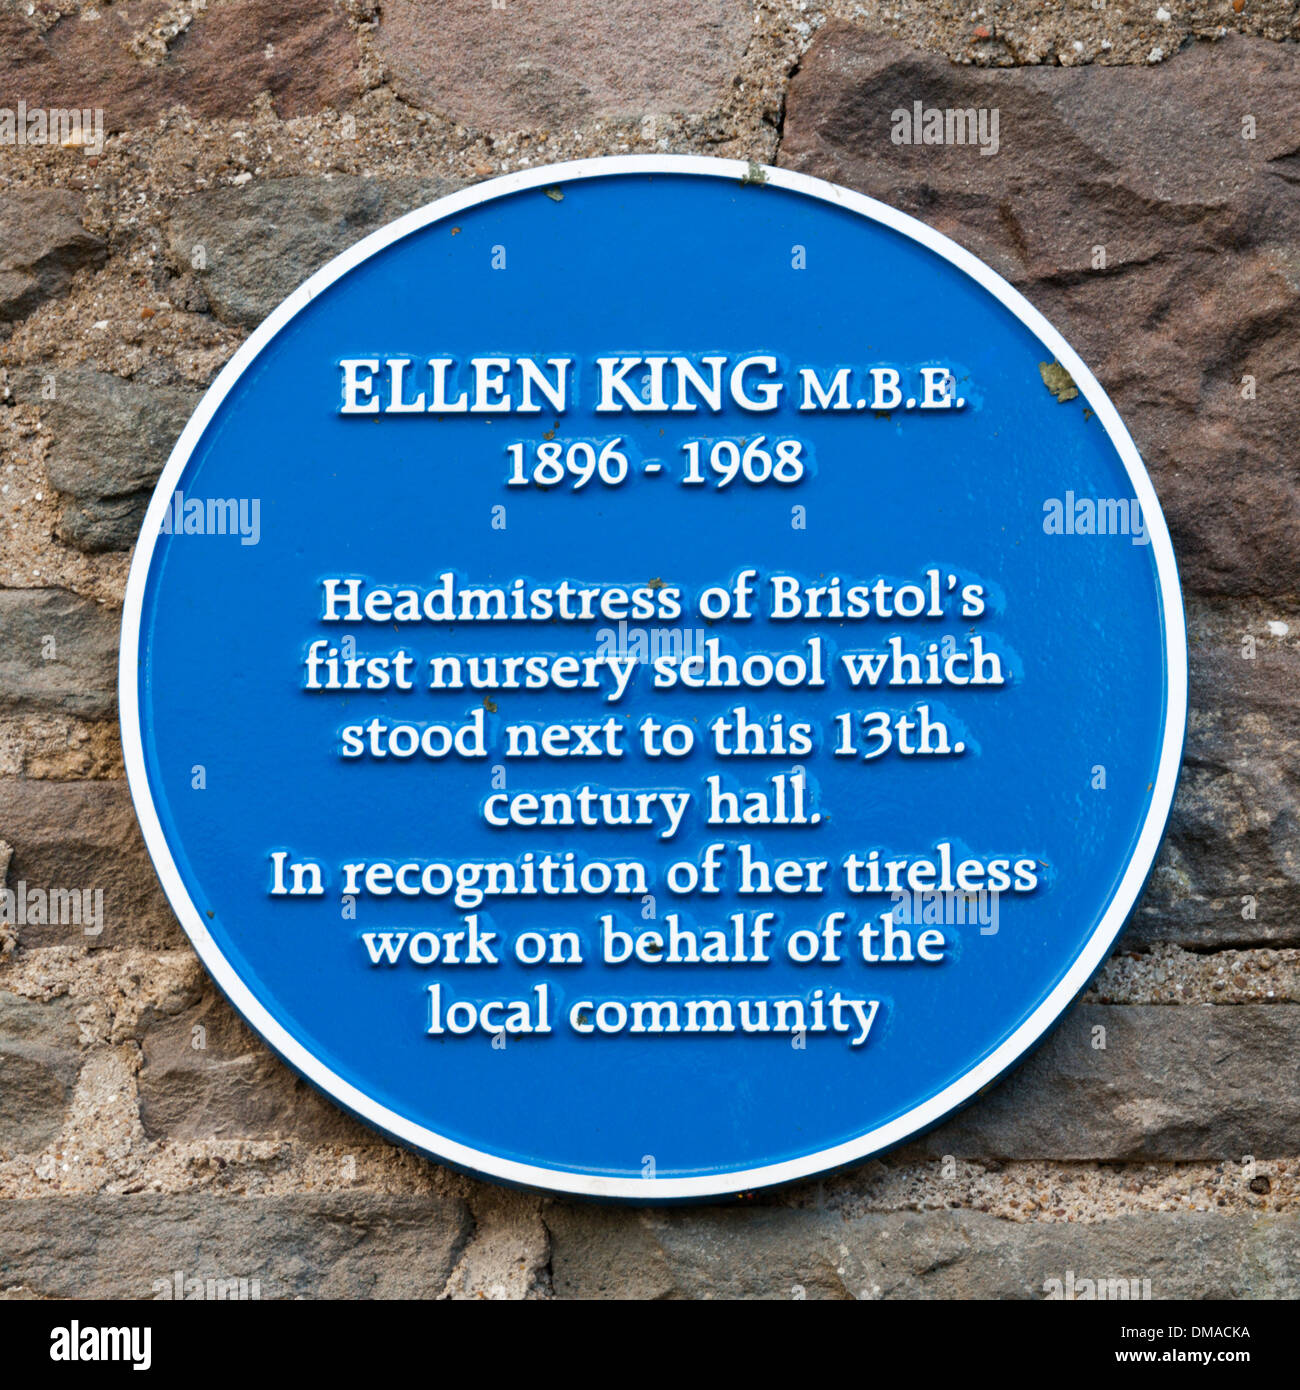 A blue plaque commemorates Ellen King MBE, the headmistress of Bristol's first nursery school, - Stock Image